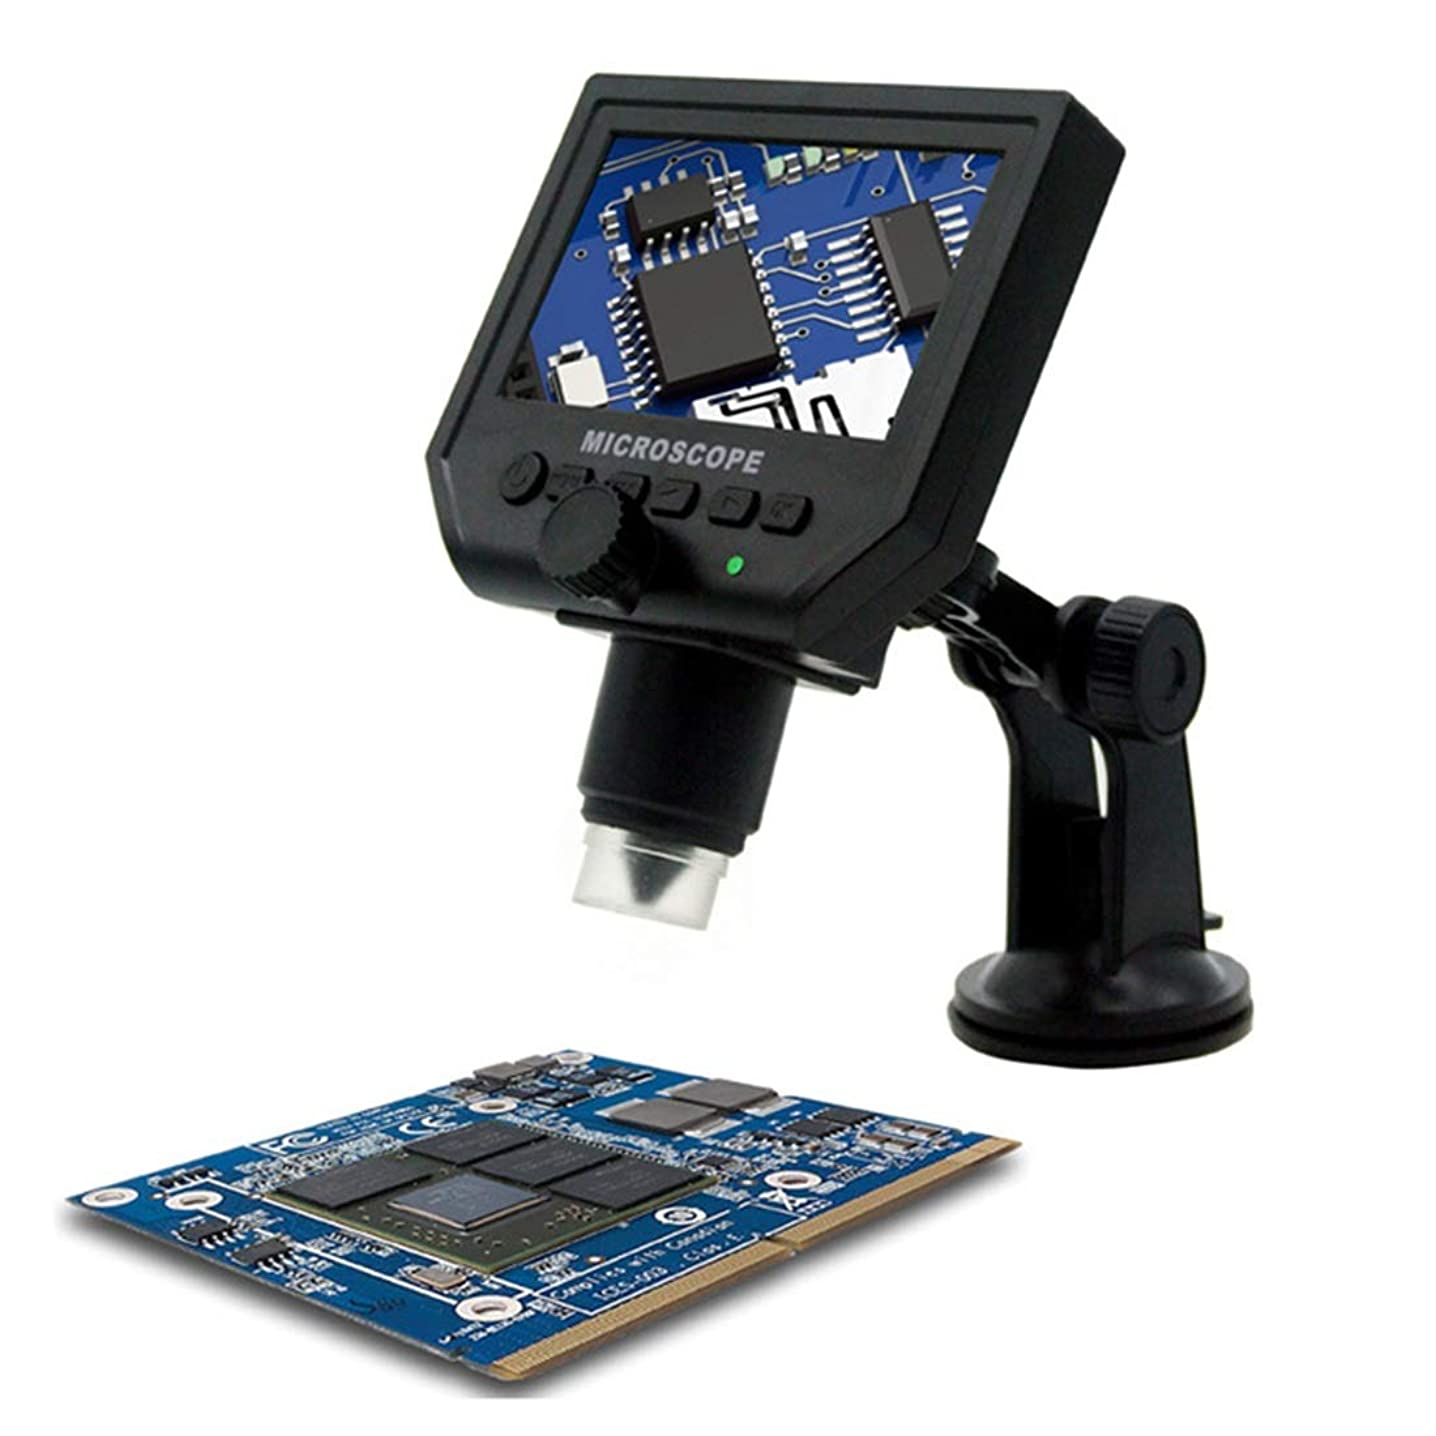 AUSWIEI 600x Digital Microscope 3.6MP Camera with Flexible Arm and 4.3inch Screen, Suitable for Phone PCB Clock Service